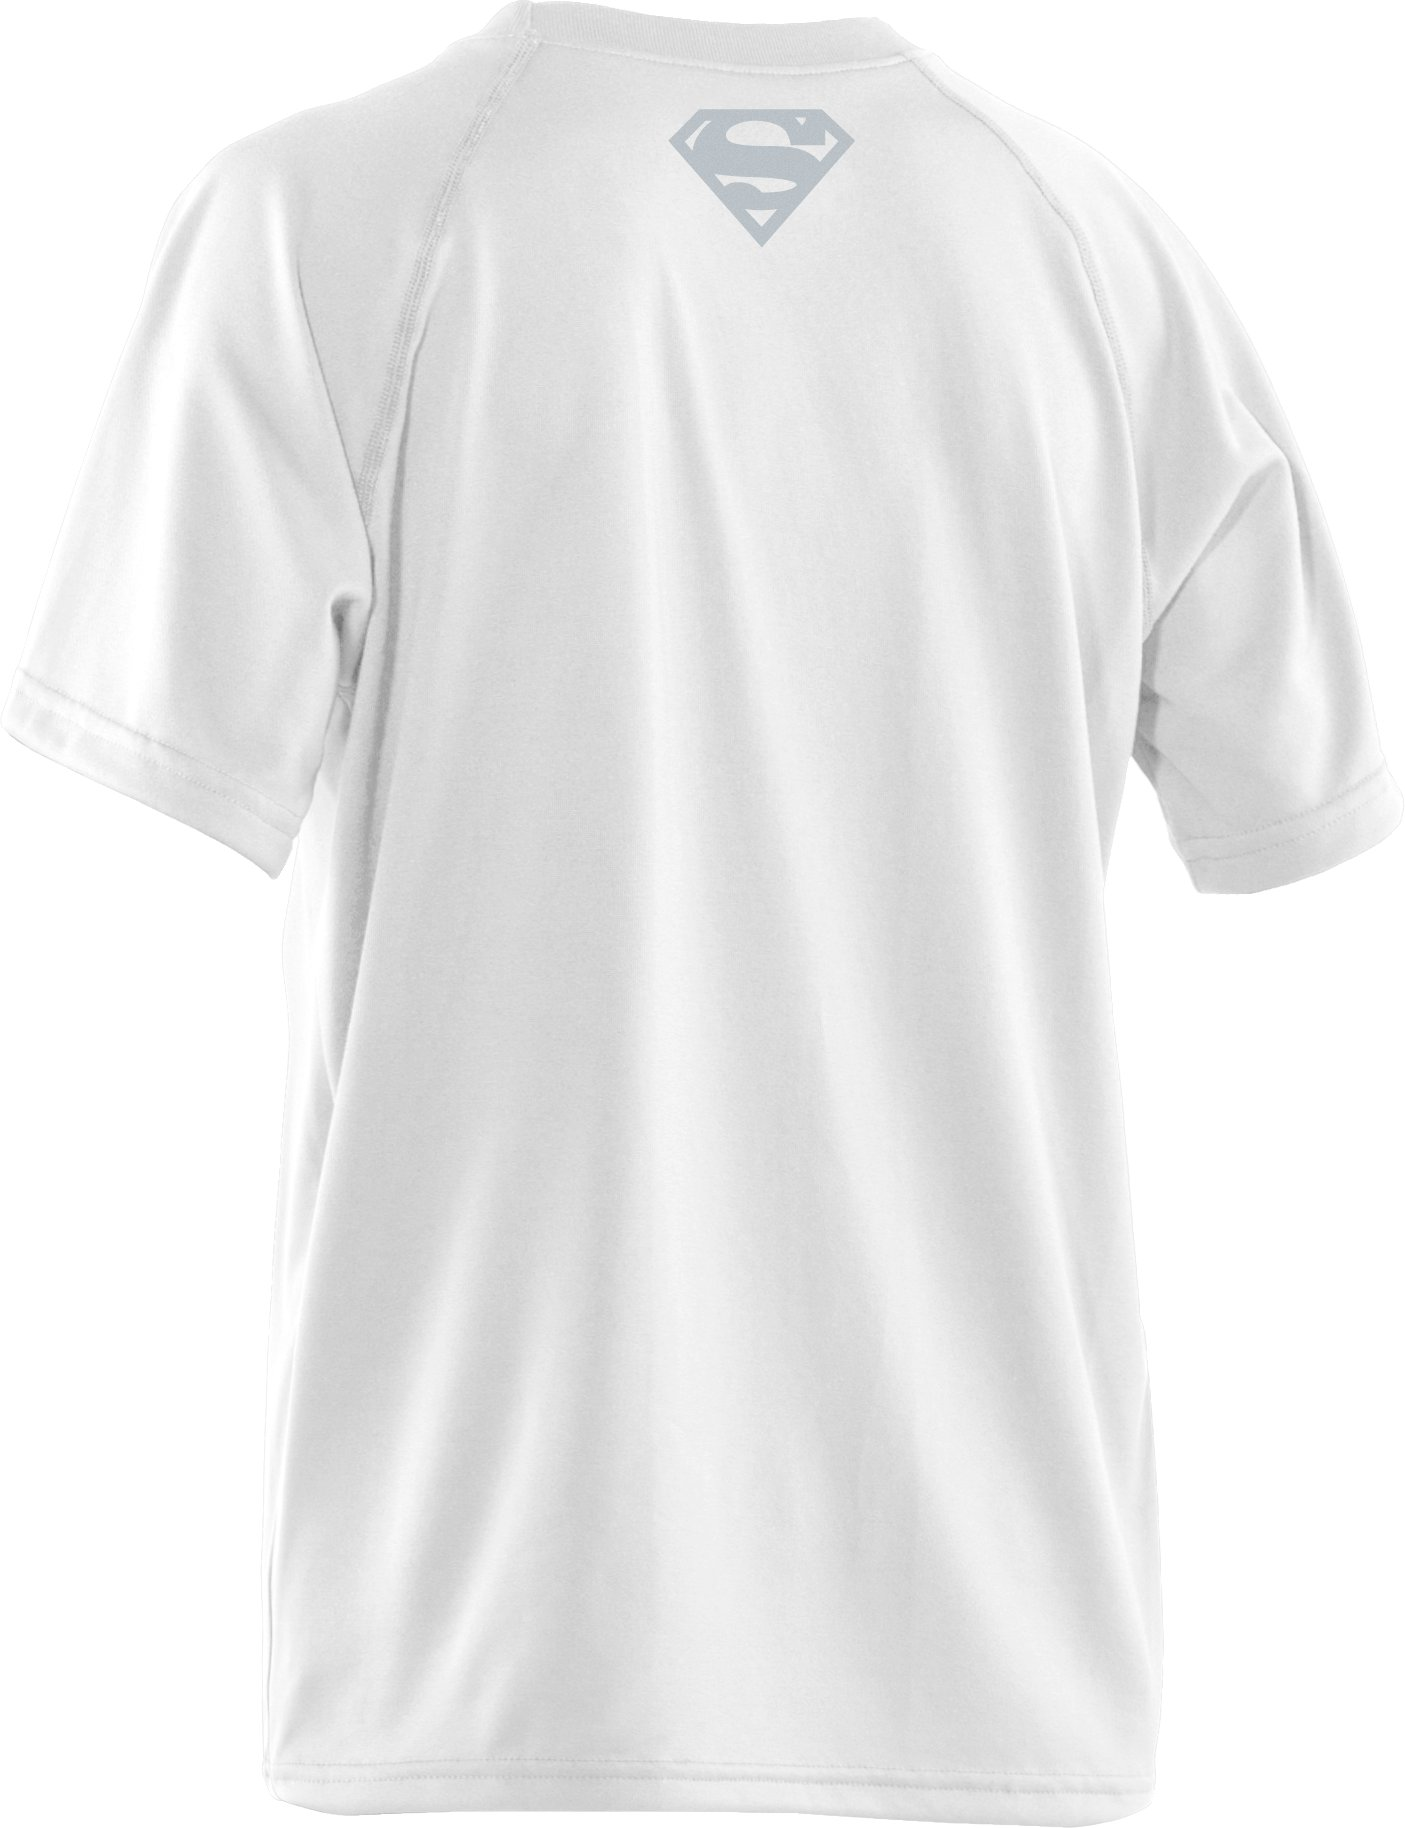 Boys' Under Armour® Alter Ego Man Of Steel T-Shirt, White,